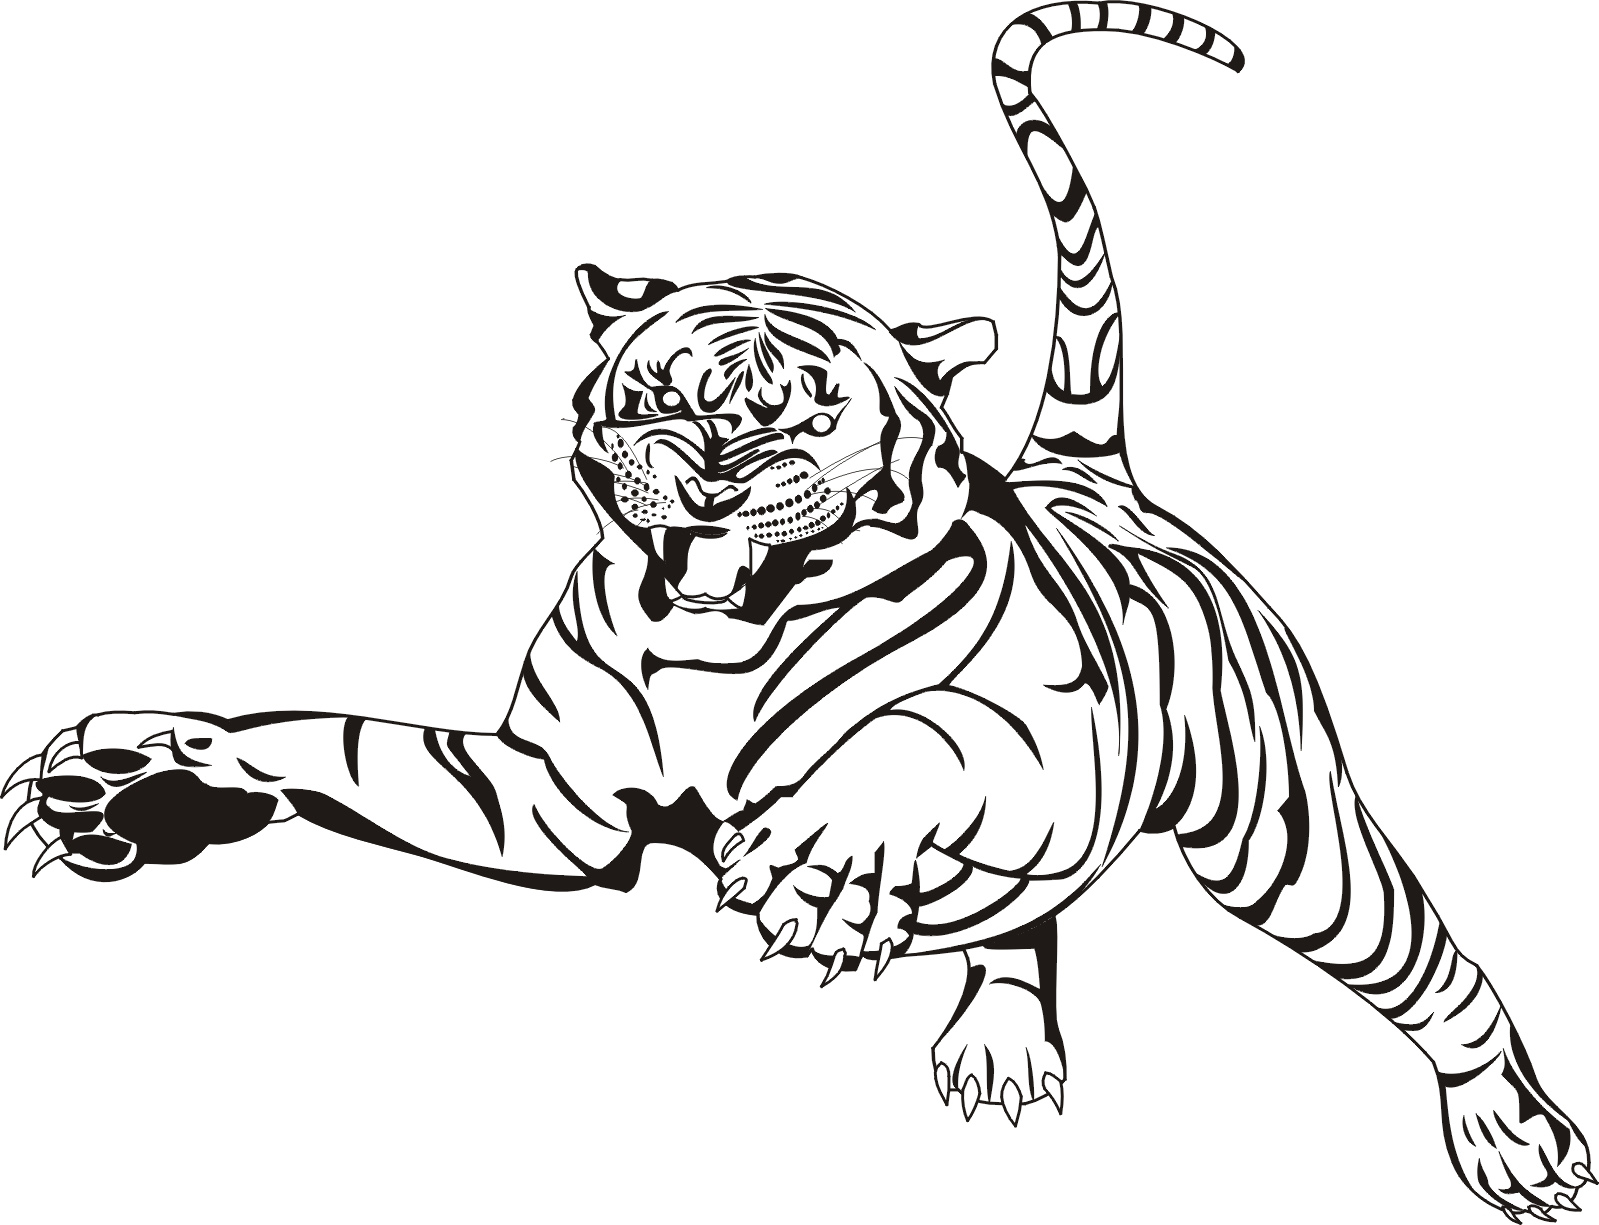 Advanced Tiger Coloring Pages : Tigers coloring pages kids